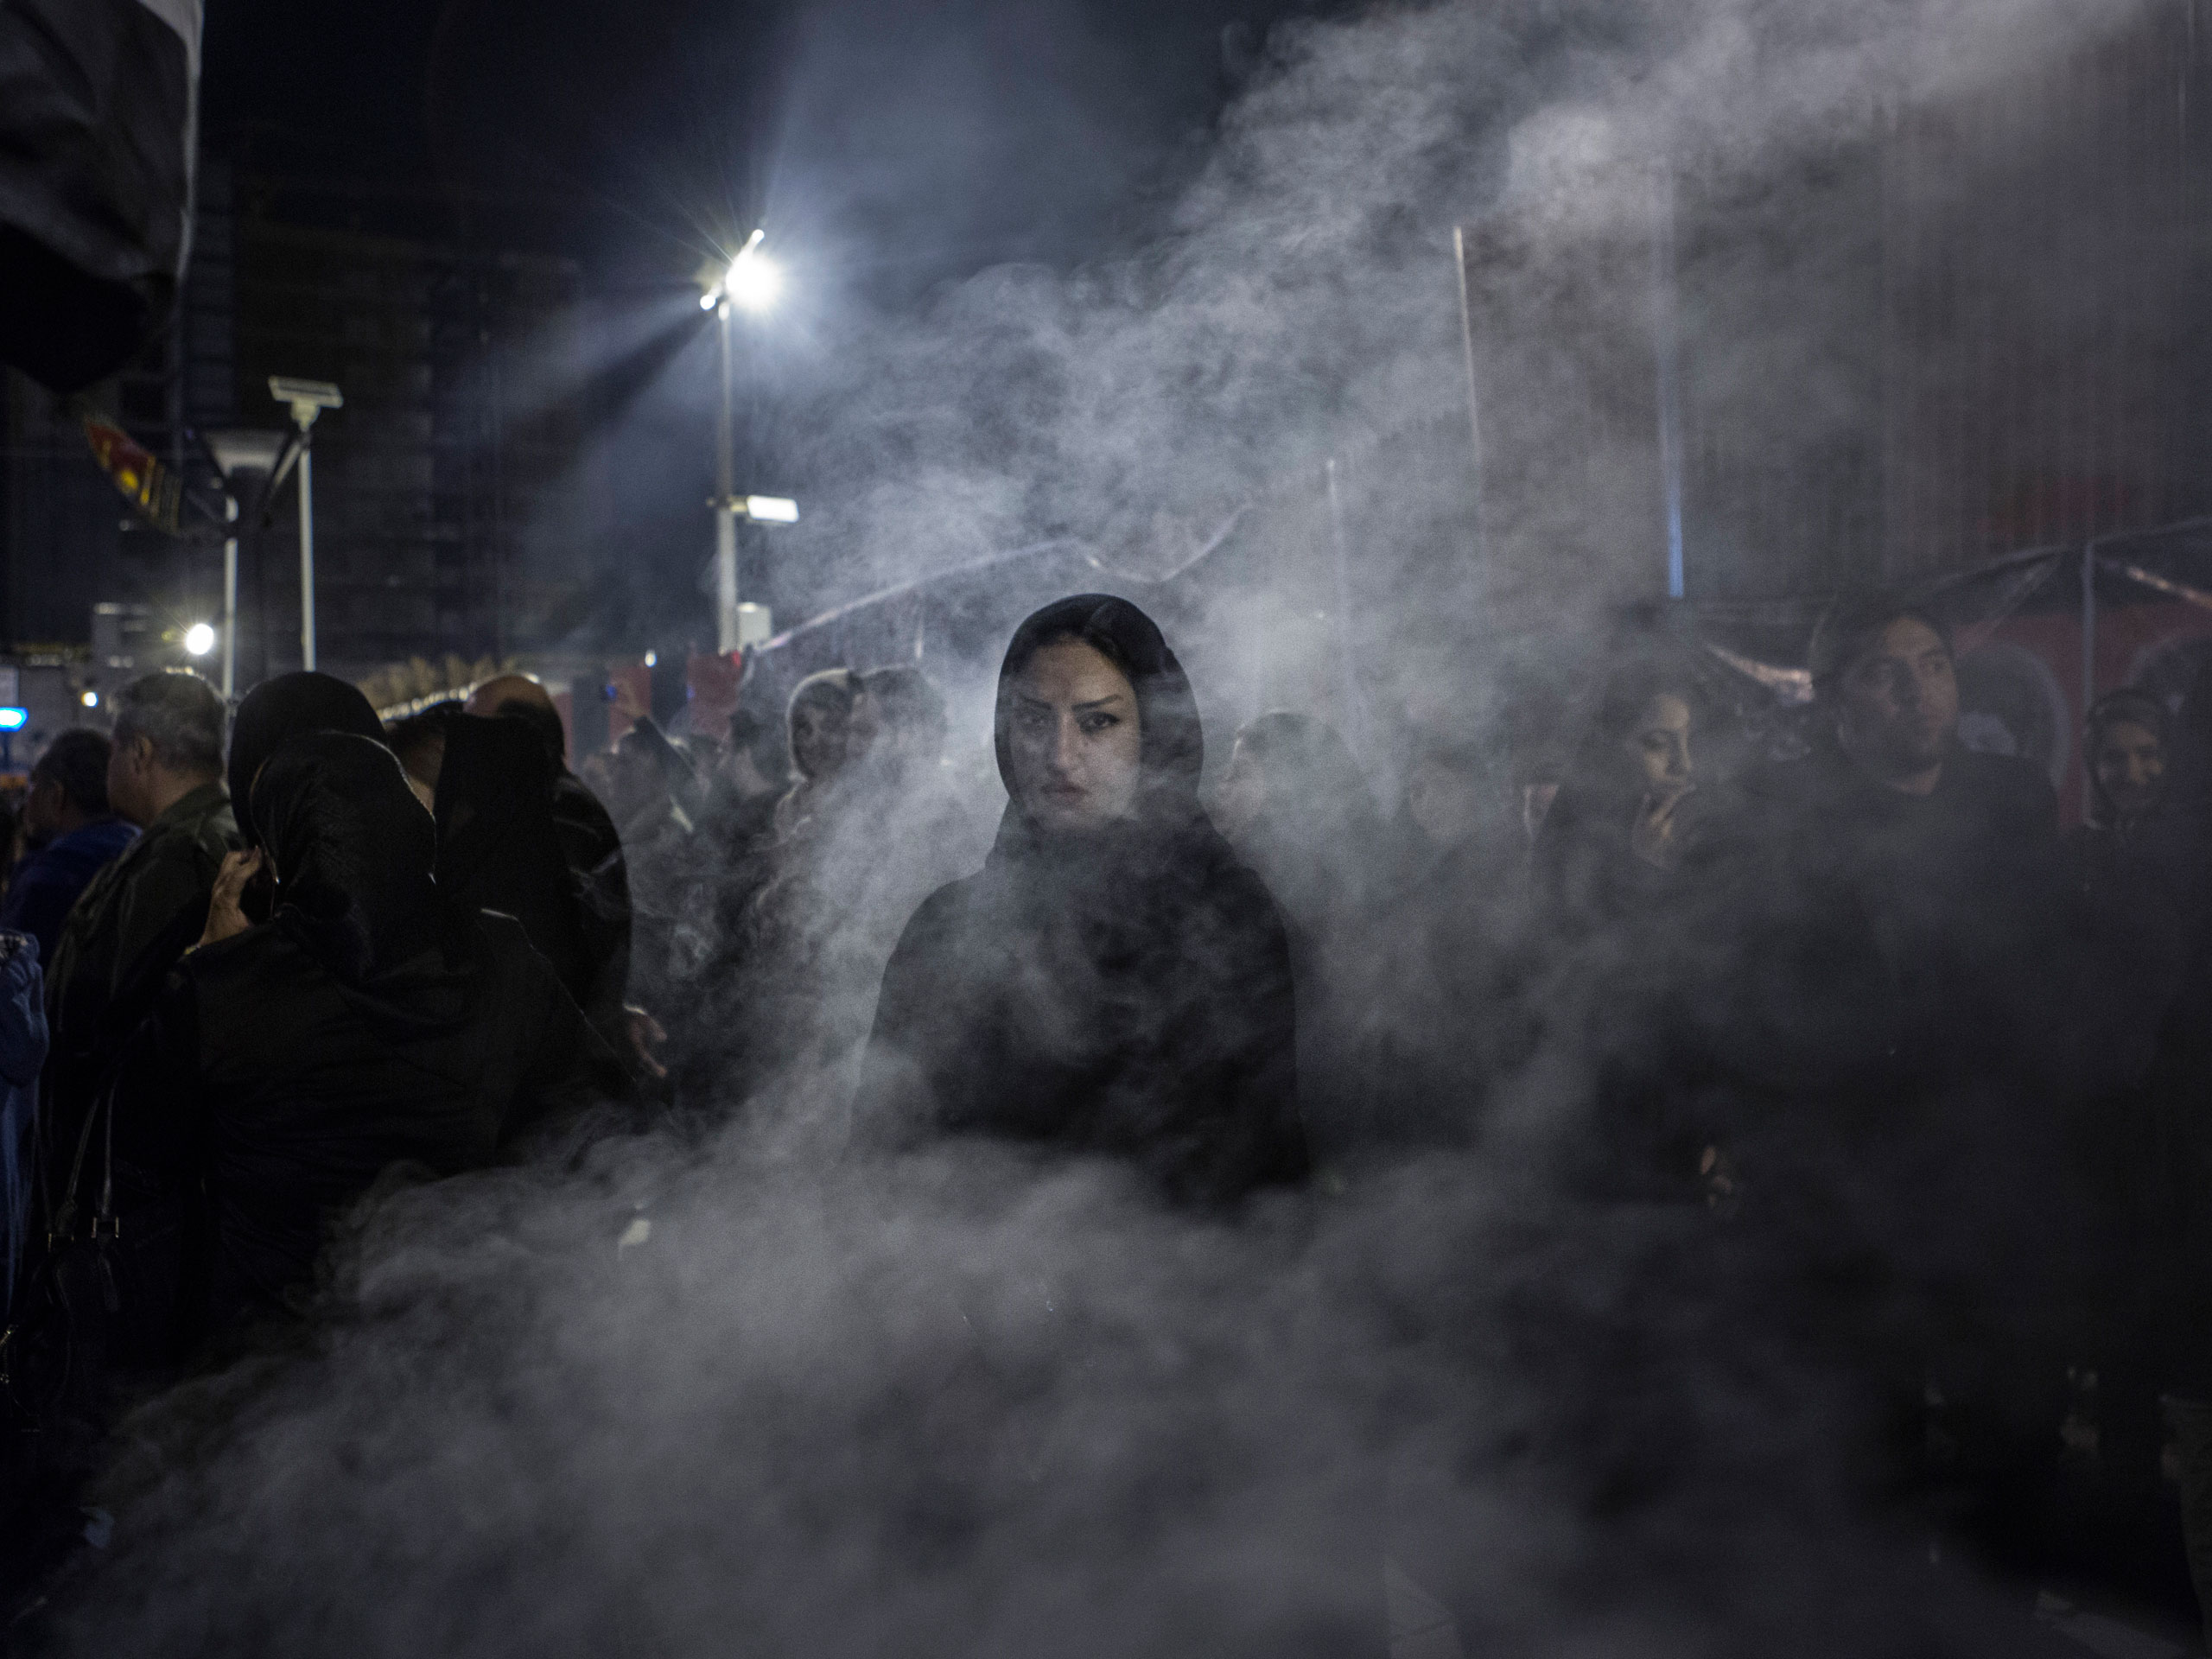 An Iranian woman walks through a haze of smoke caused by the burning of the herb esfand. According to popular belief, this ritual drives away the evil eye.